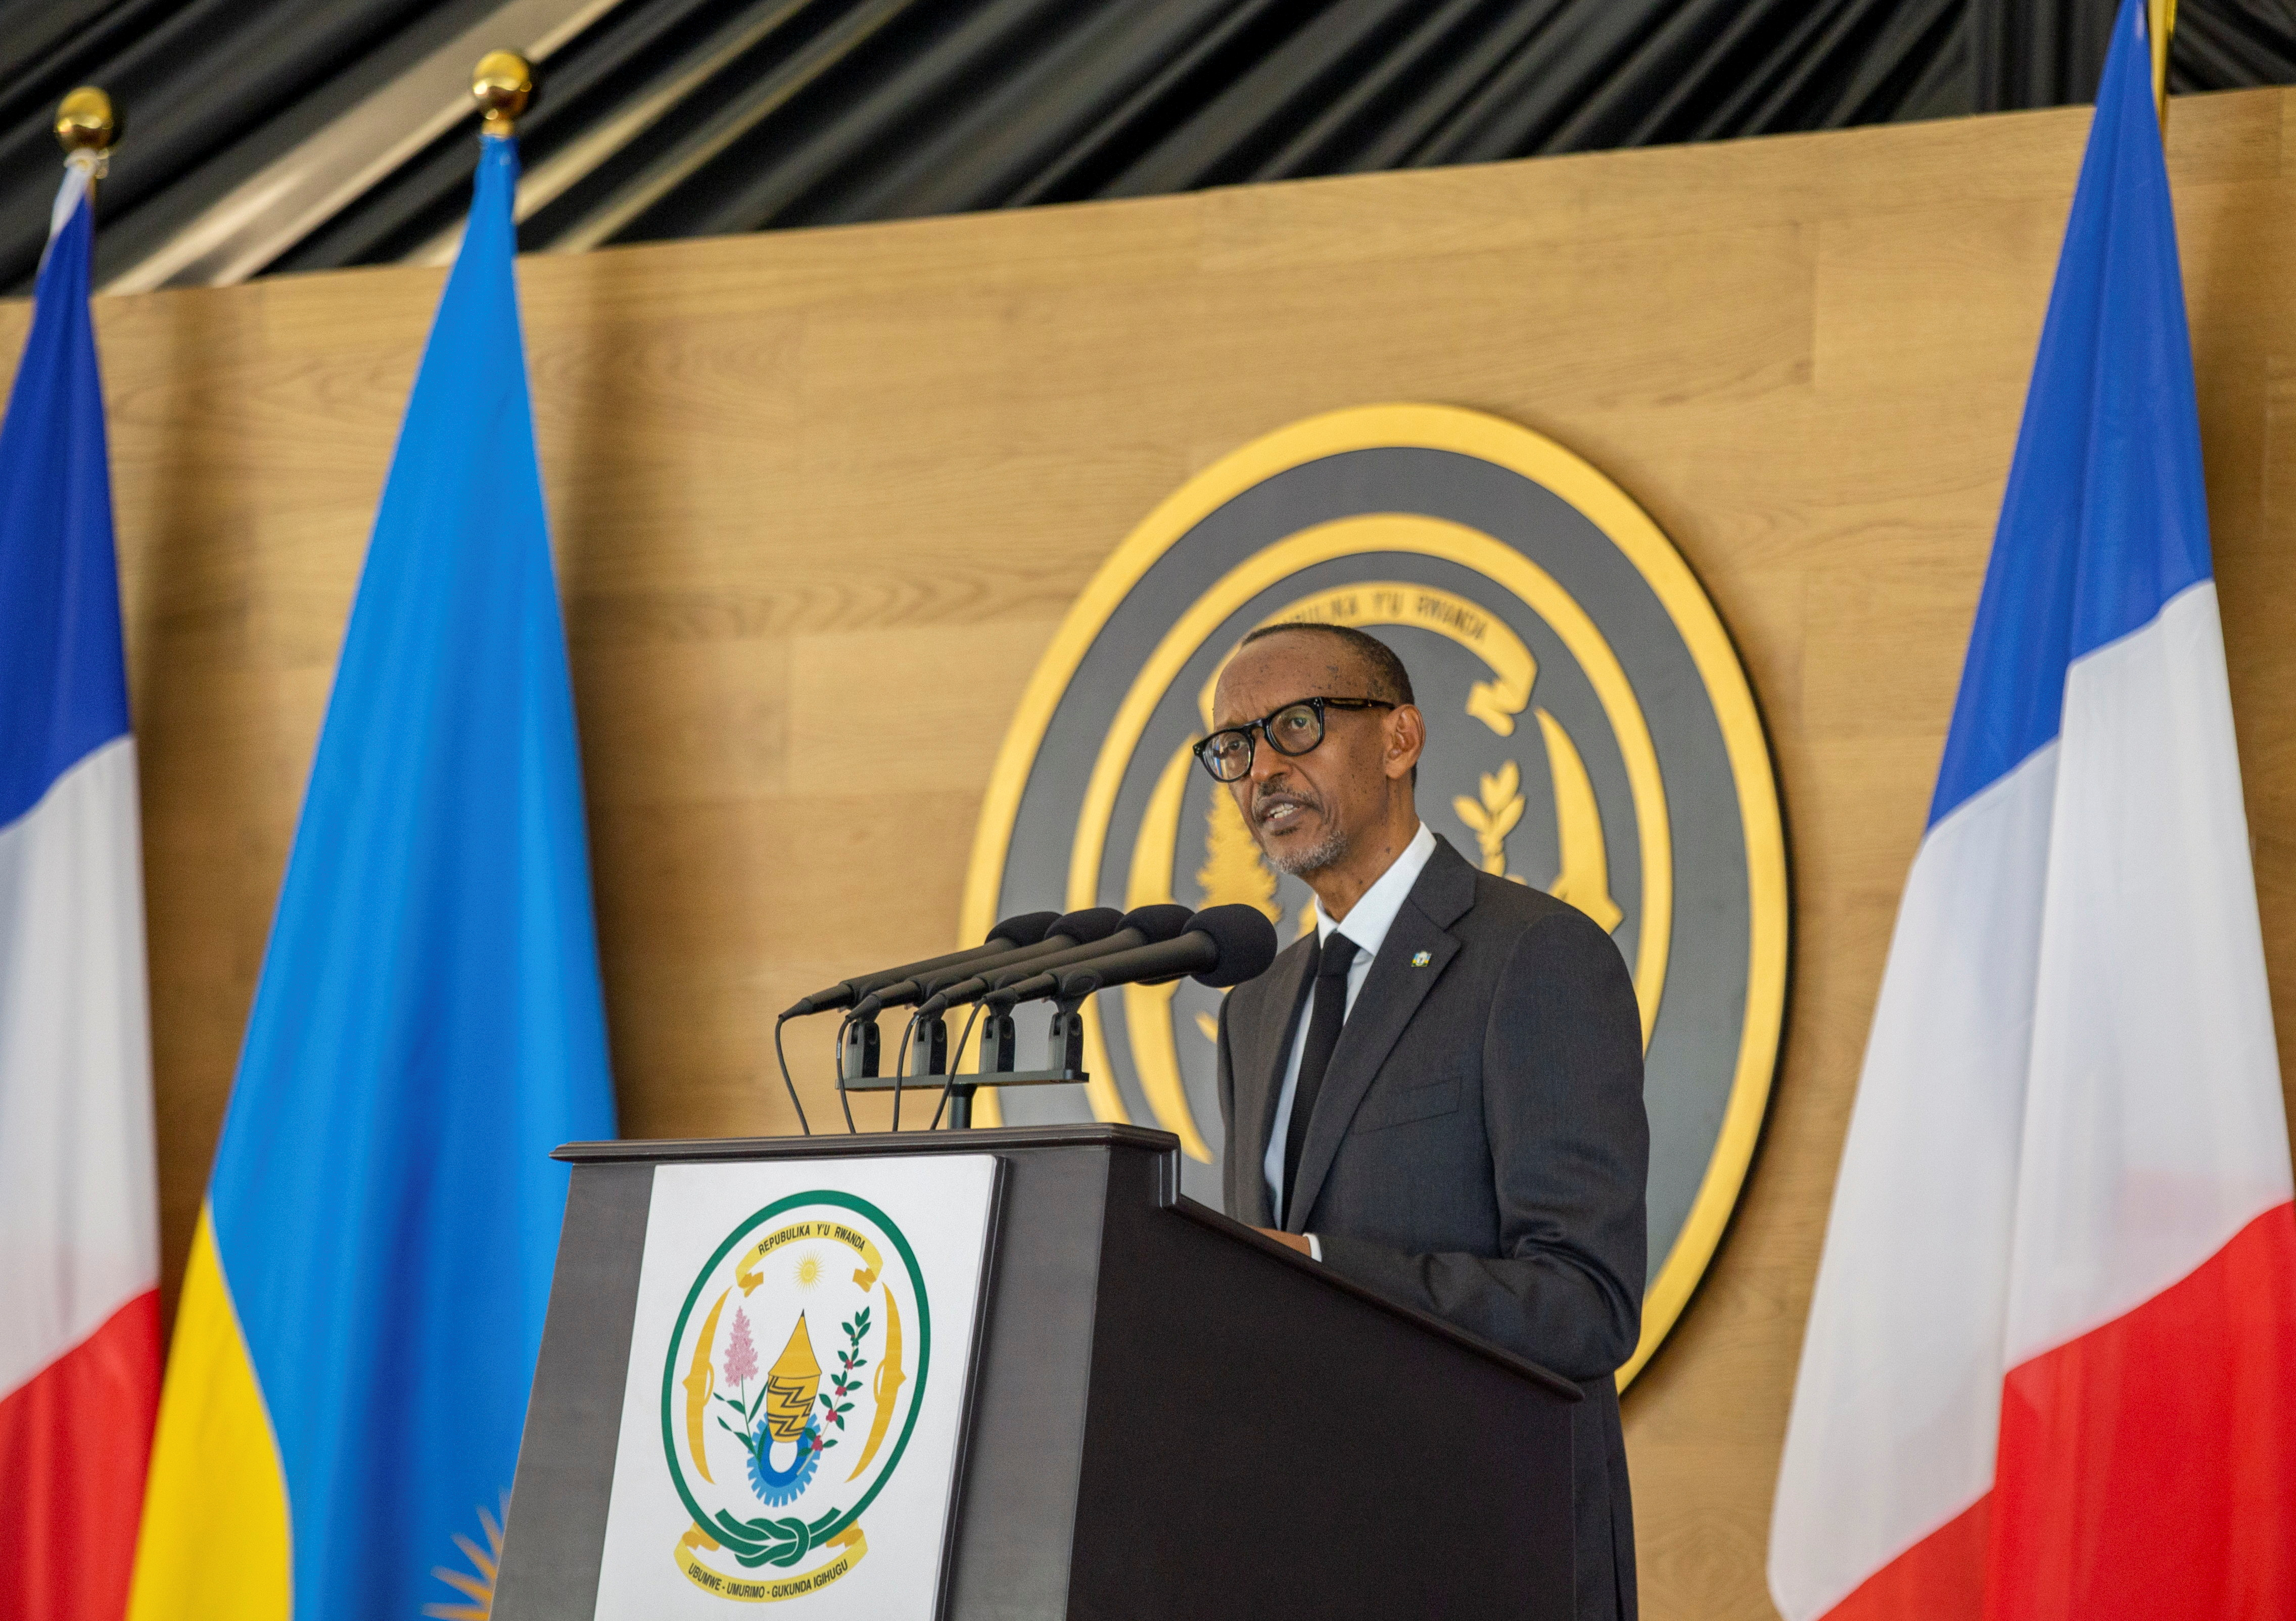 Rwandan President Paul Kagame address a joint news conference with French President Emmanuel Macron at the Presidential Palace in Kigali, Rwanda May 27, 2021. REUTERS/Jean Bizimana